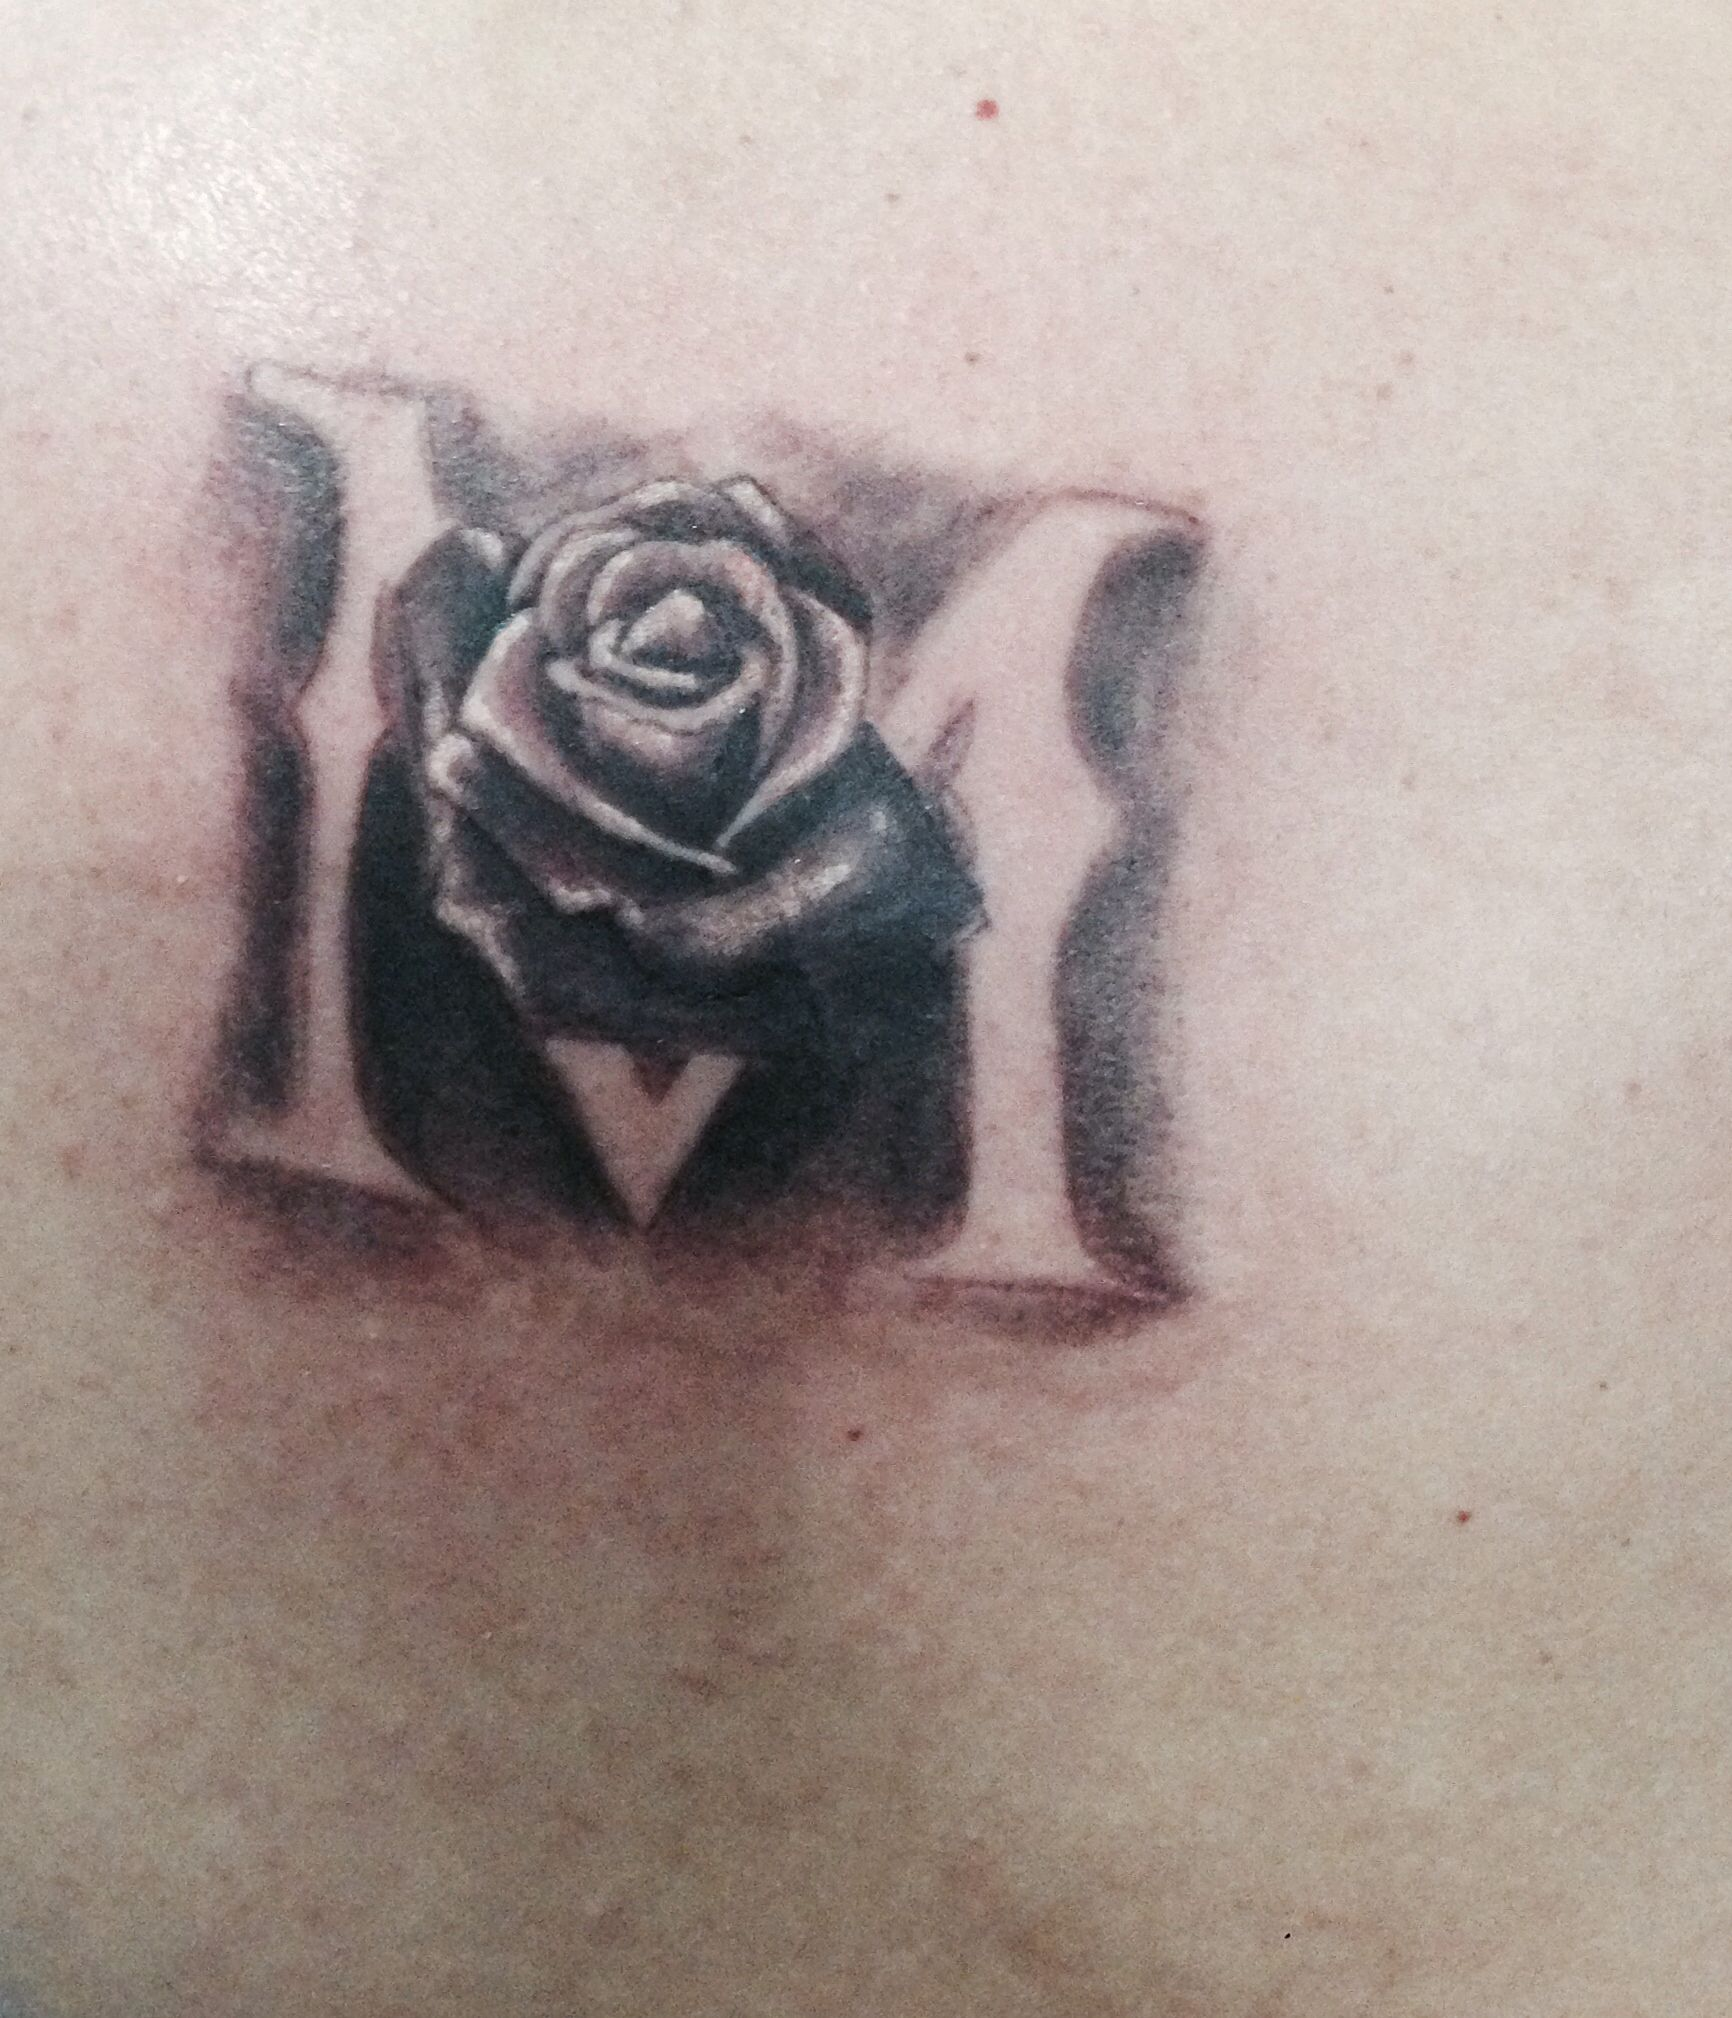 """New tattoo. Letter """"M"""" with a rose.   Tattoos, New tattoos"""